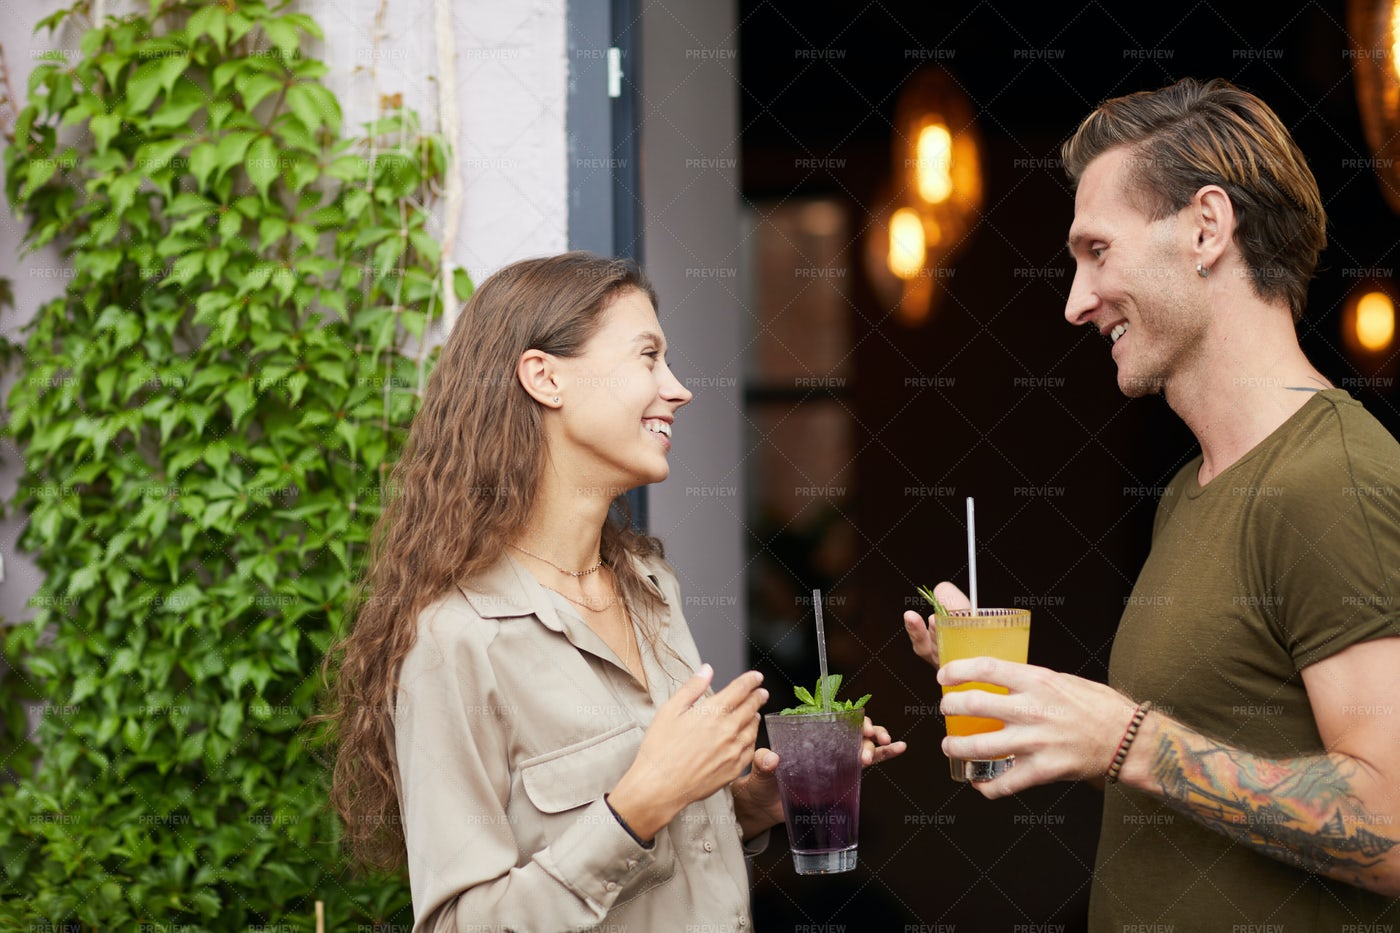 Friends Chatting Outdoors By Cafe: Stock Photos